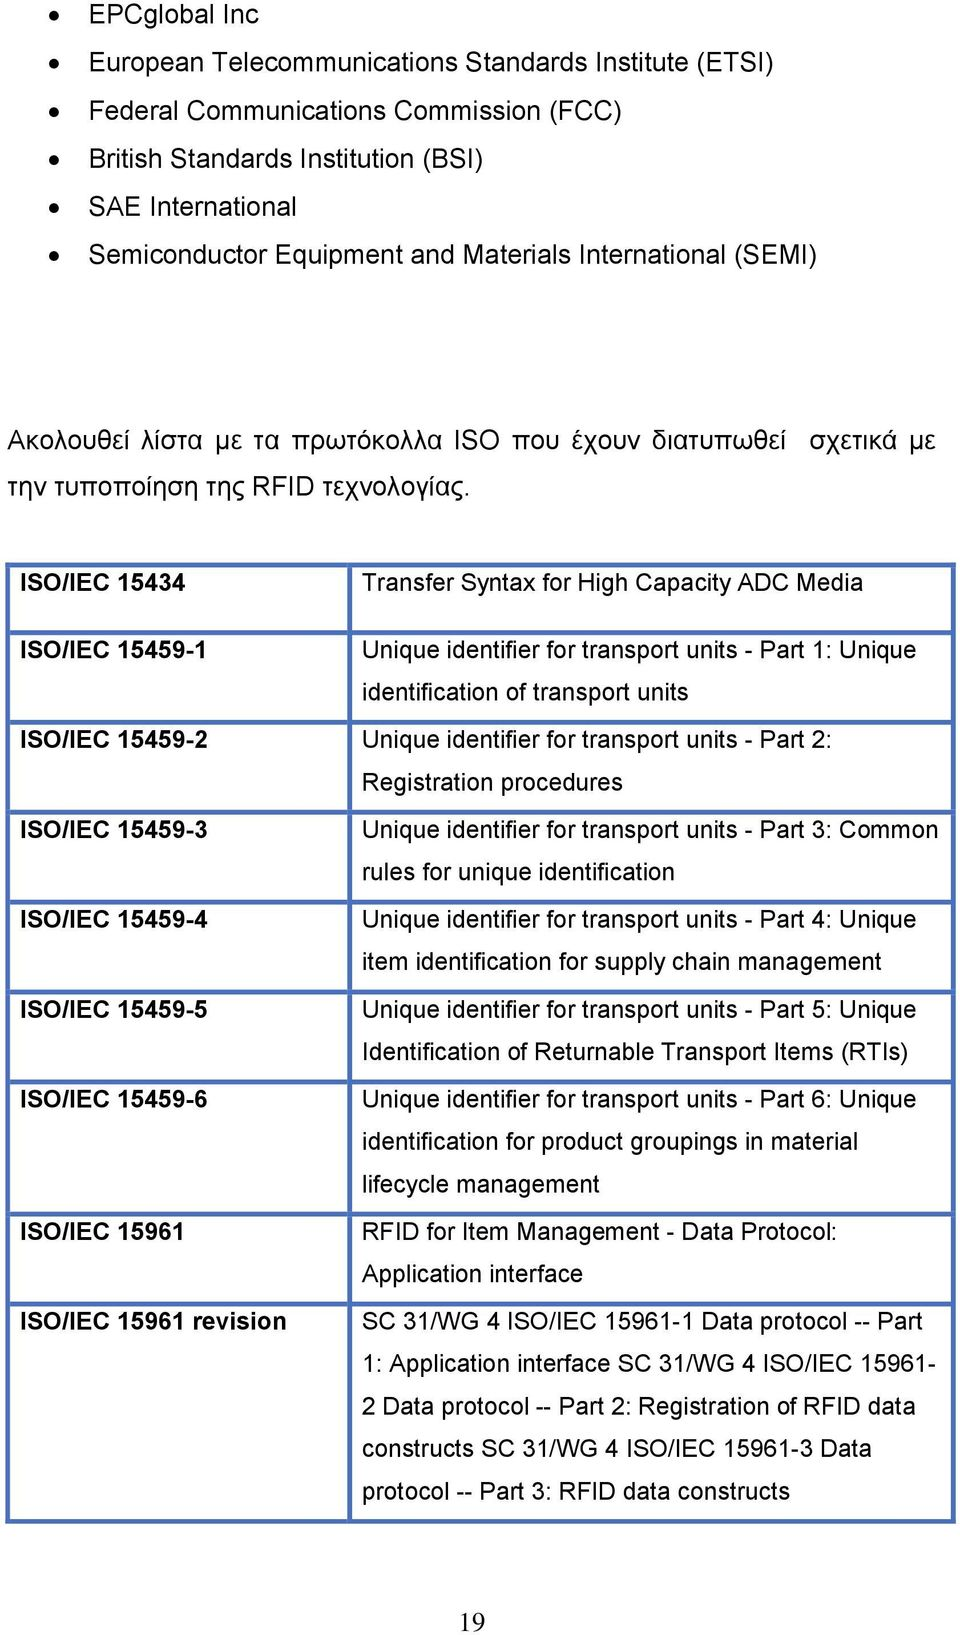 ISO/IEC 15434 Transfer Syntax for High Capacity ADC Media ISO/IEC 15459-1 Unique identifier for transport units - Part 1: Unique identification of transport units ISO/IEC 15459-2 Unique identifier